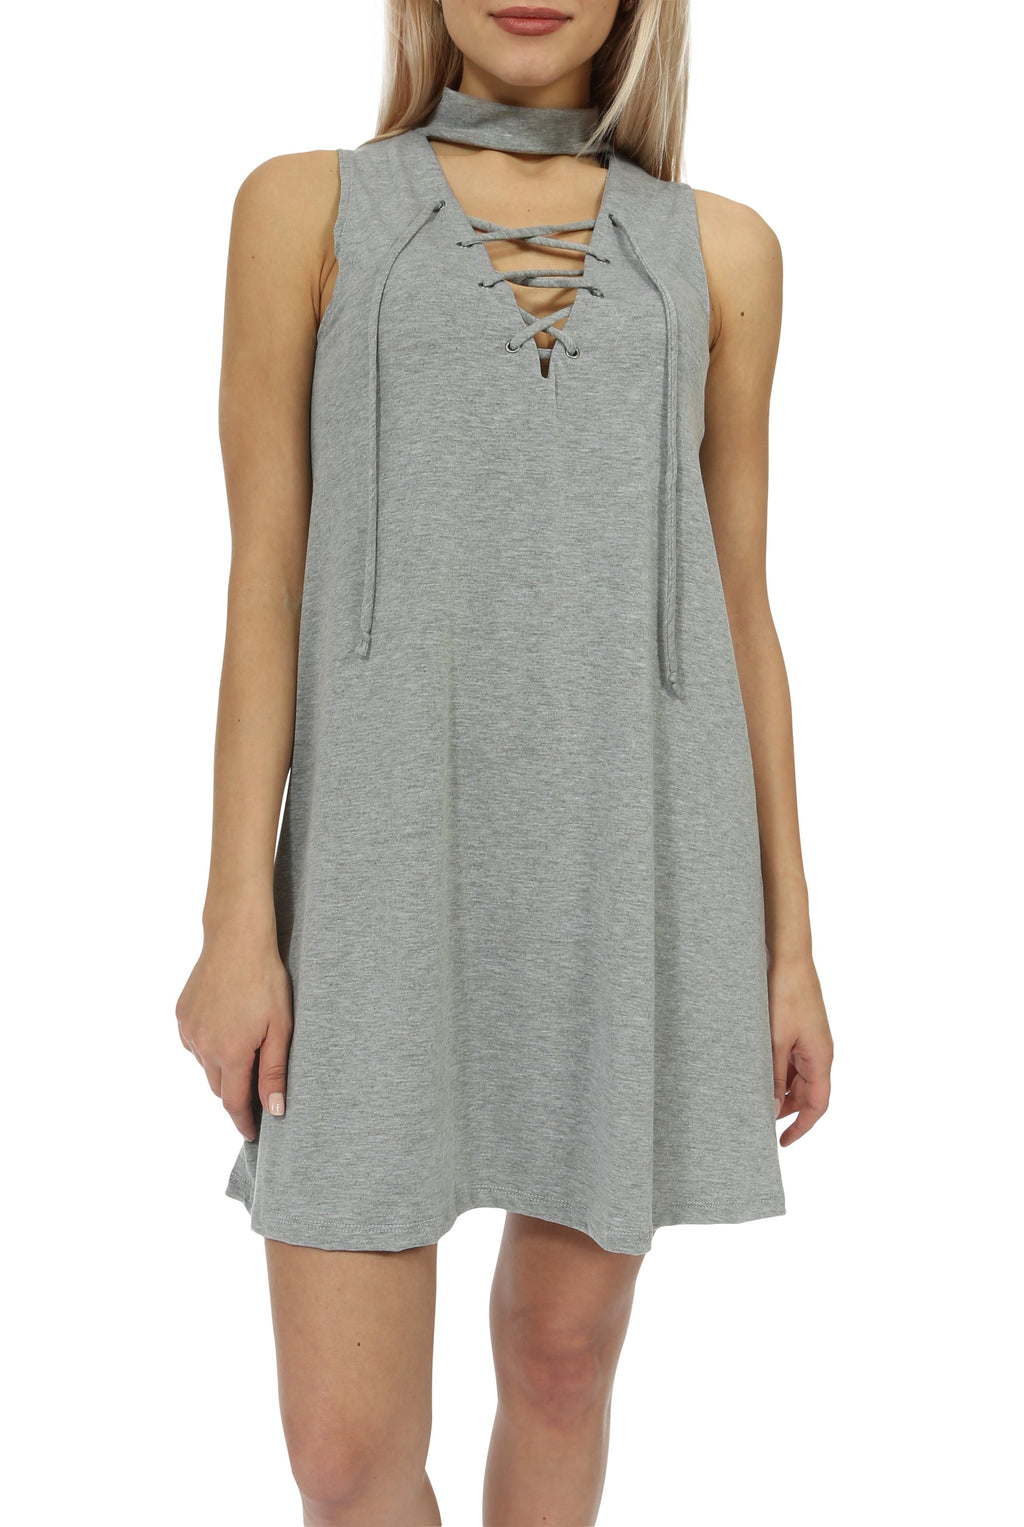 Teeze Me | Sleeveless Mock Neck Lace-Up Shift Dress | Heather Grey - Teeze Me